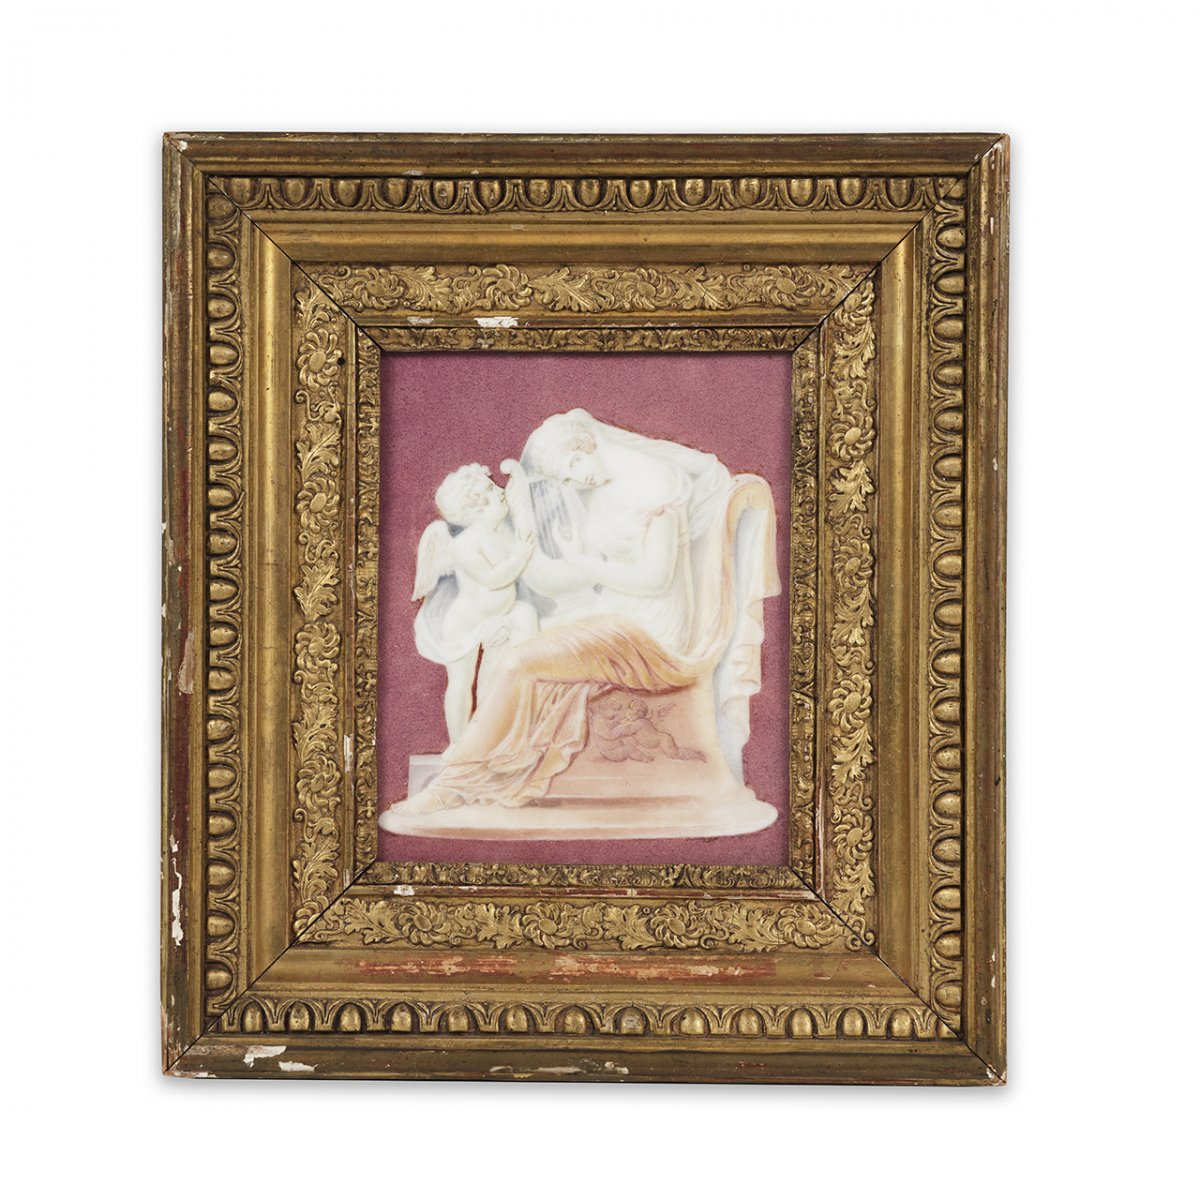 Porcelain Plaque With Polychrome Decoration Imitating An Agate Cameo